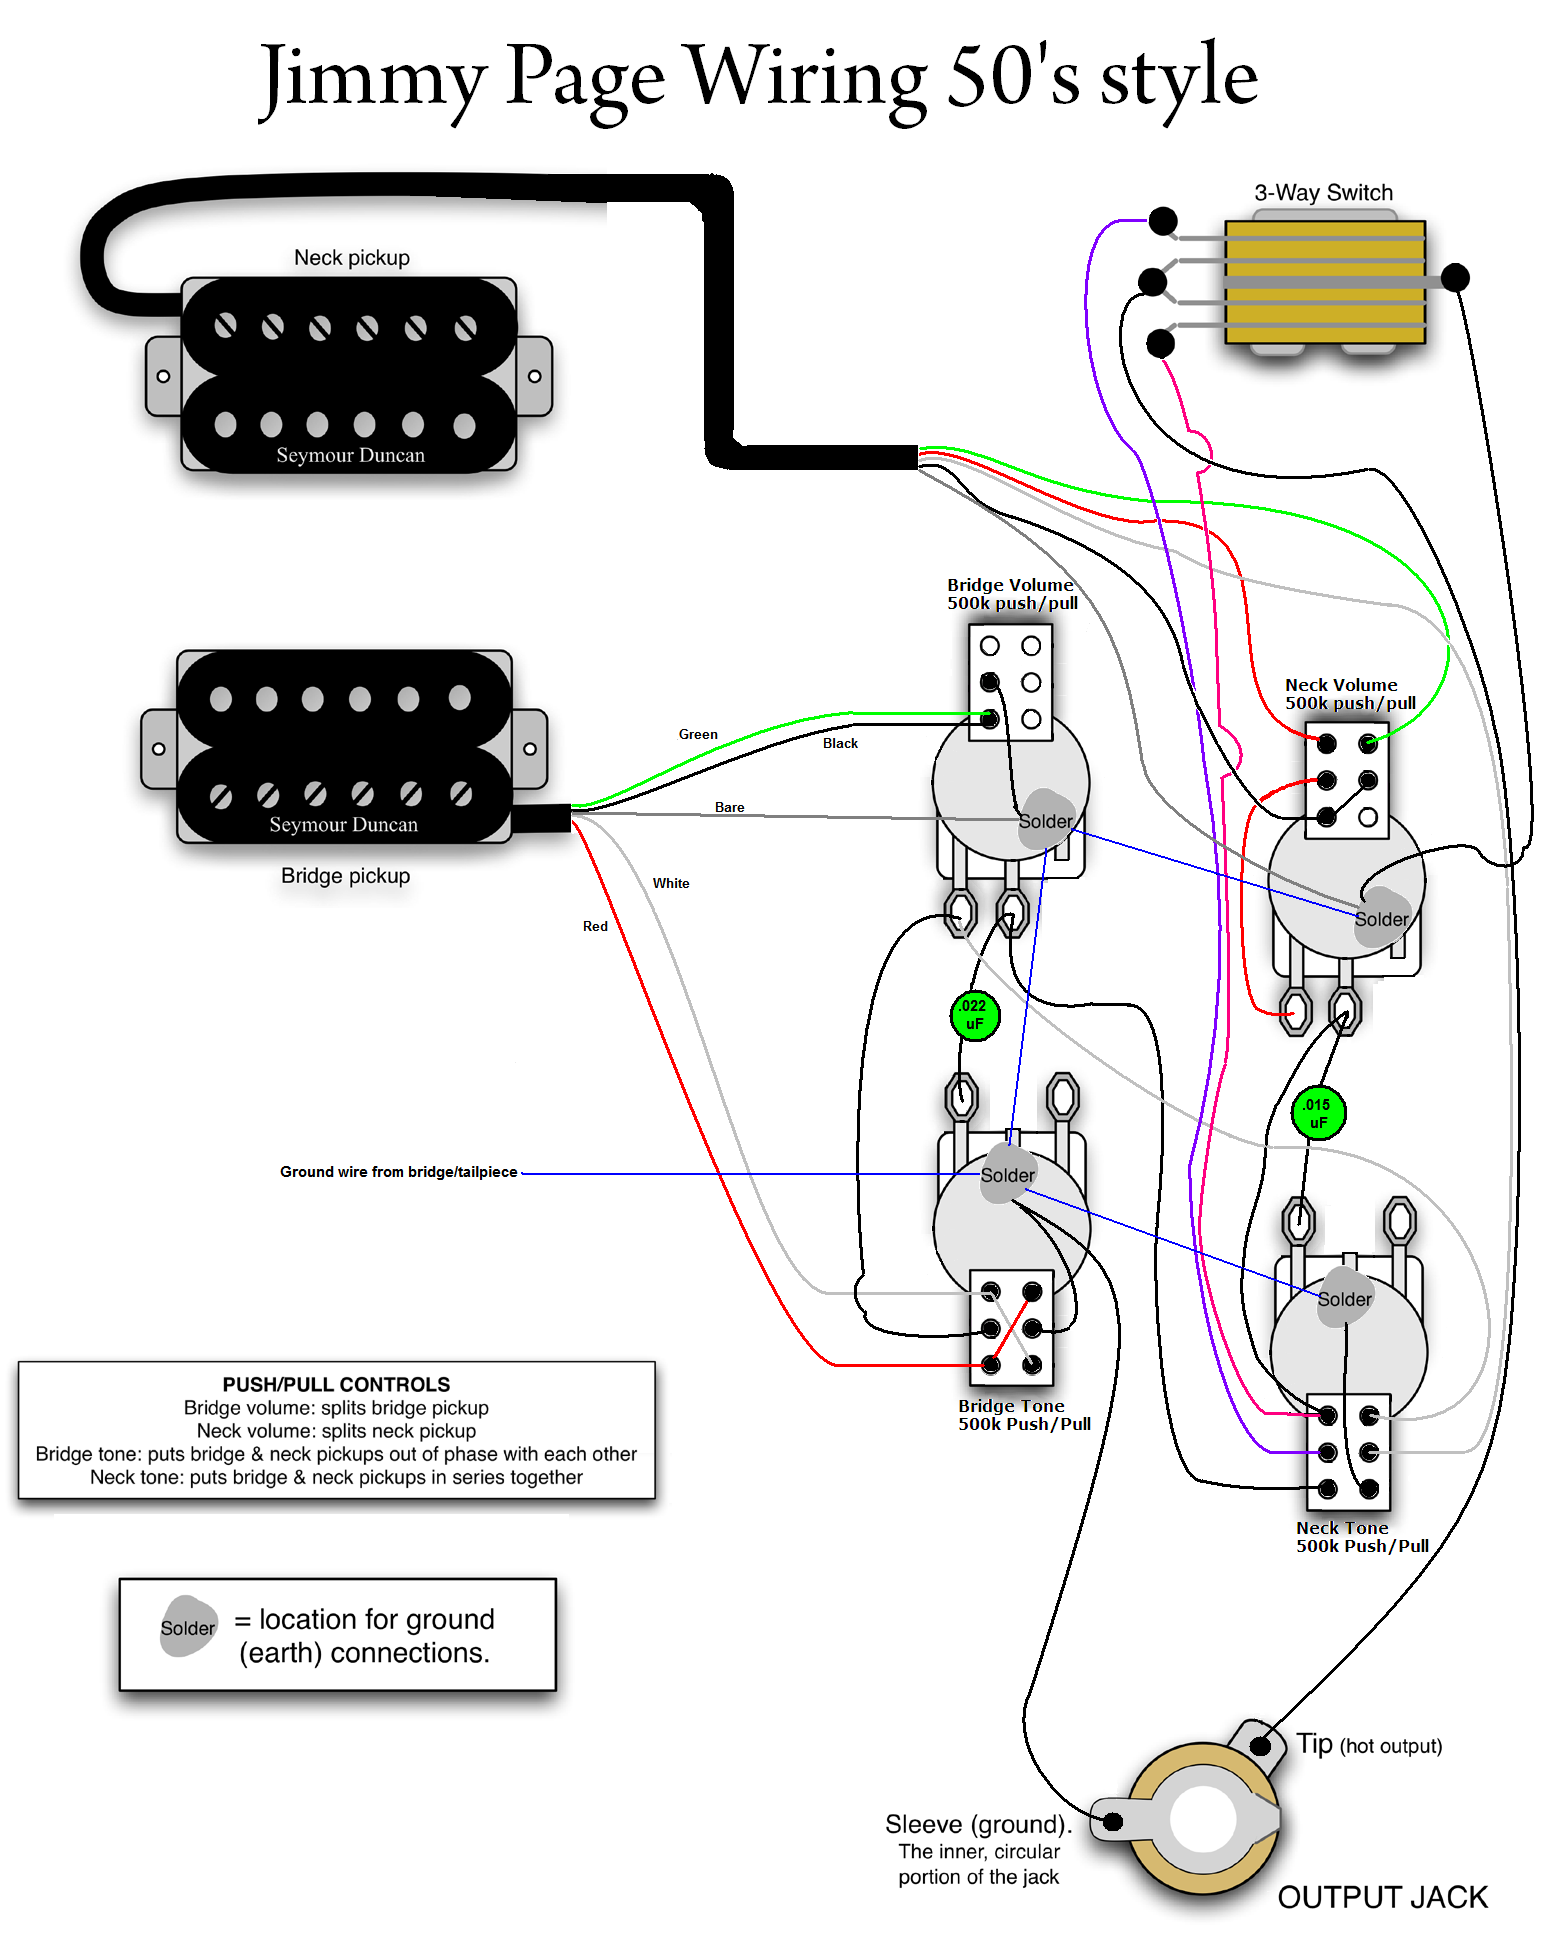 hight resolution of jimmy page 50s wiring mylespaul com instruments pinterest jimmy page stratocaster jimmy page wiring sg